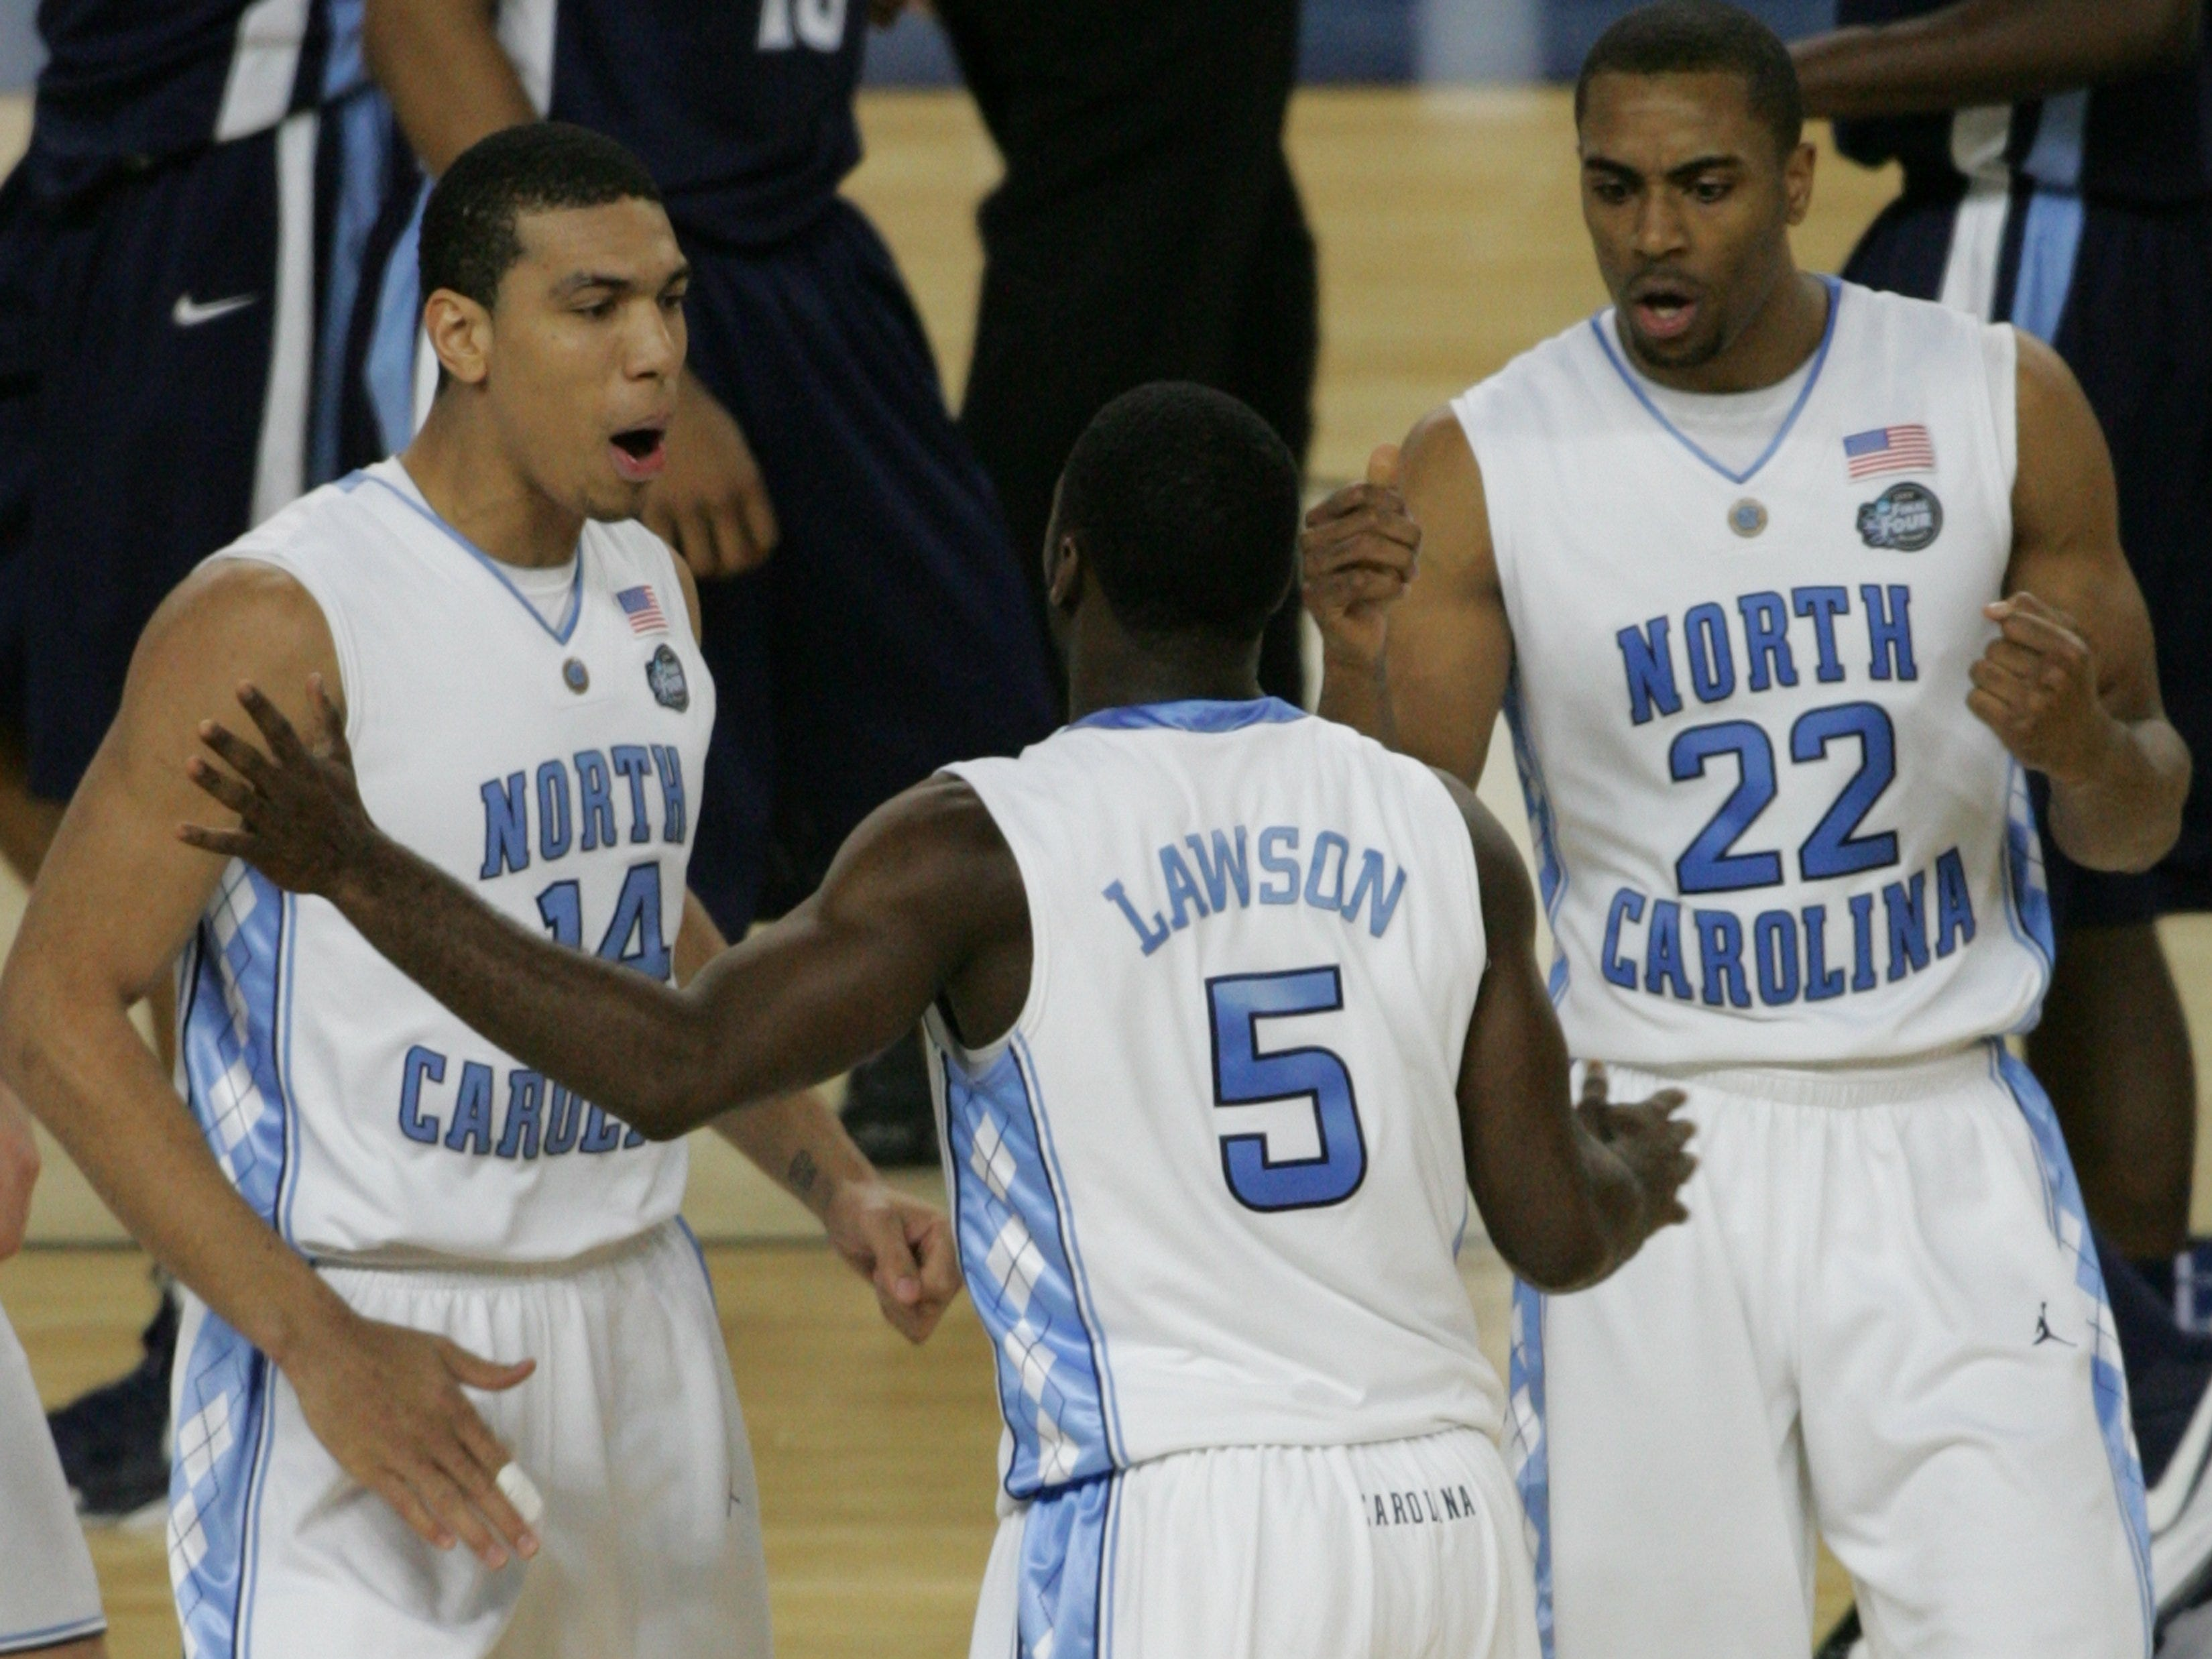 North Carolina's Danny Green, left, Ty Lawson, center, and Wayne Ellington celebrate a play during the NCAA Final Four semifinal against Villanova at Ford Field in Detroit, April 4, 2009.